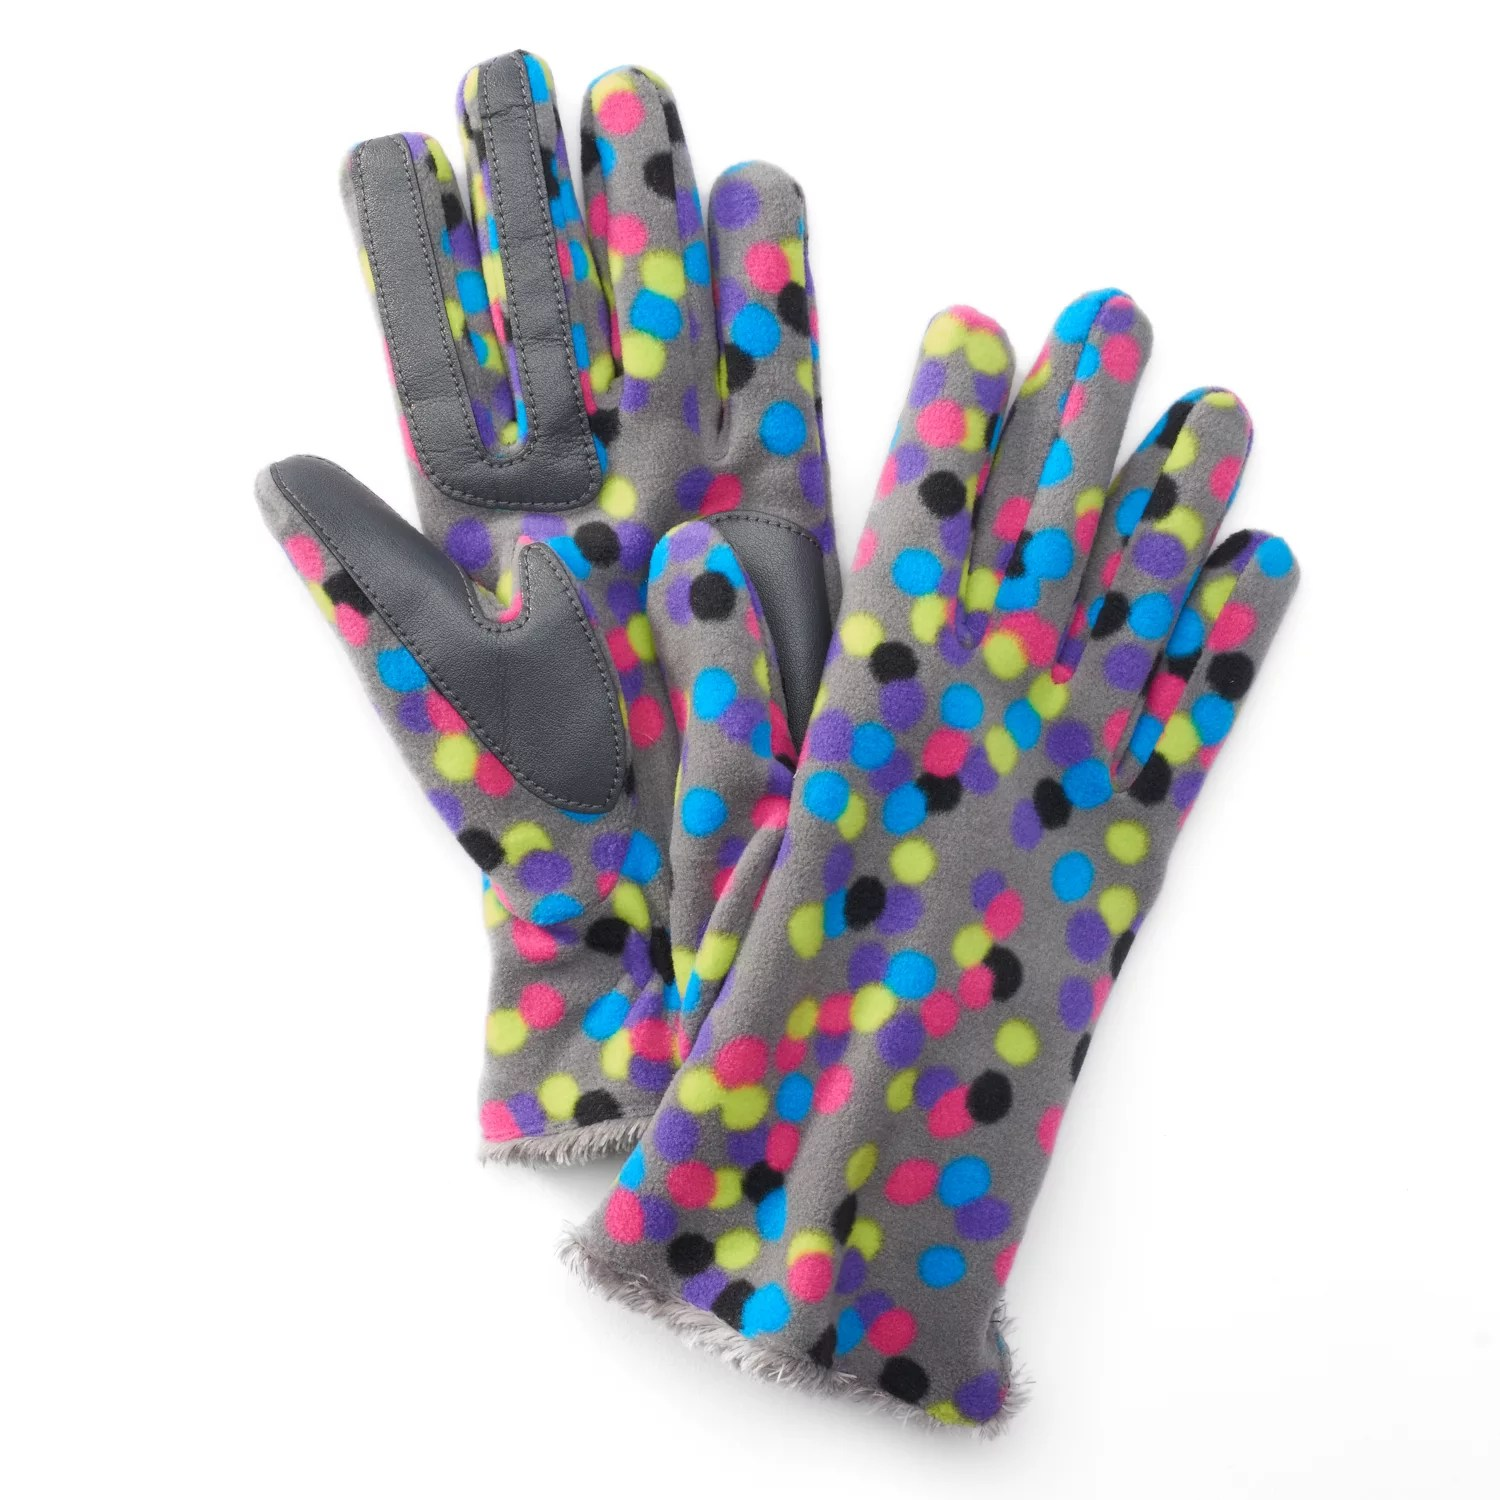 Knit Gloves With Leather Palms